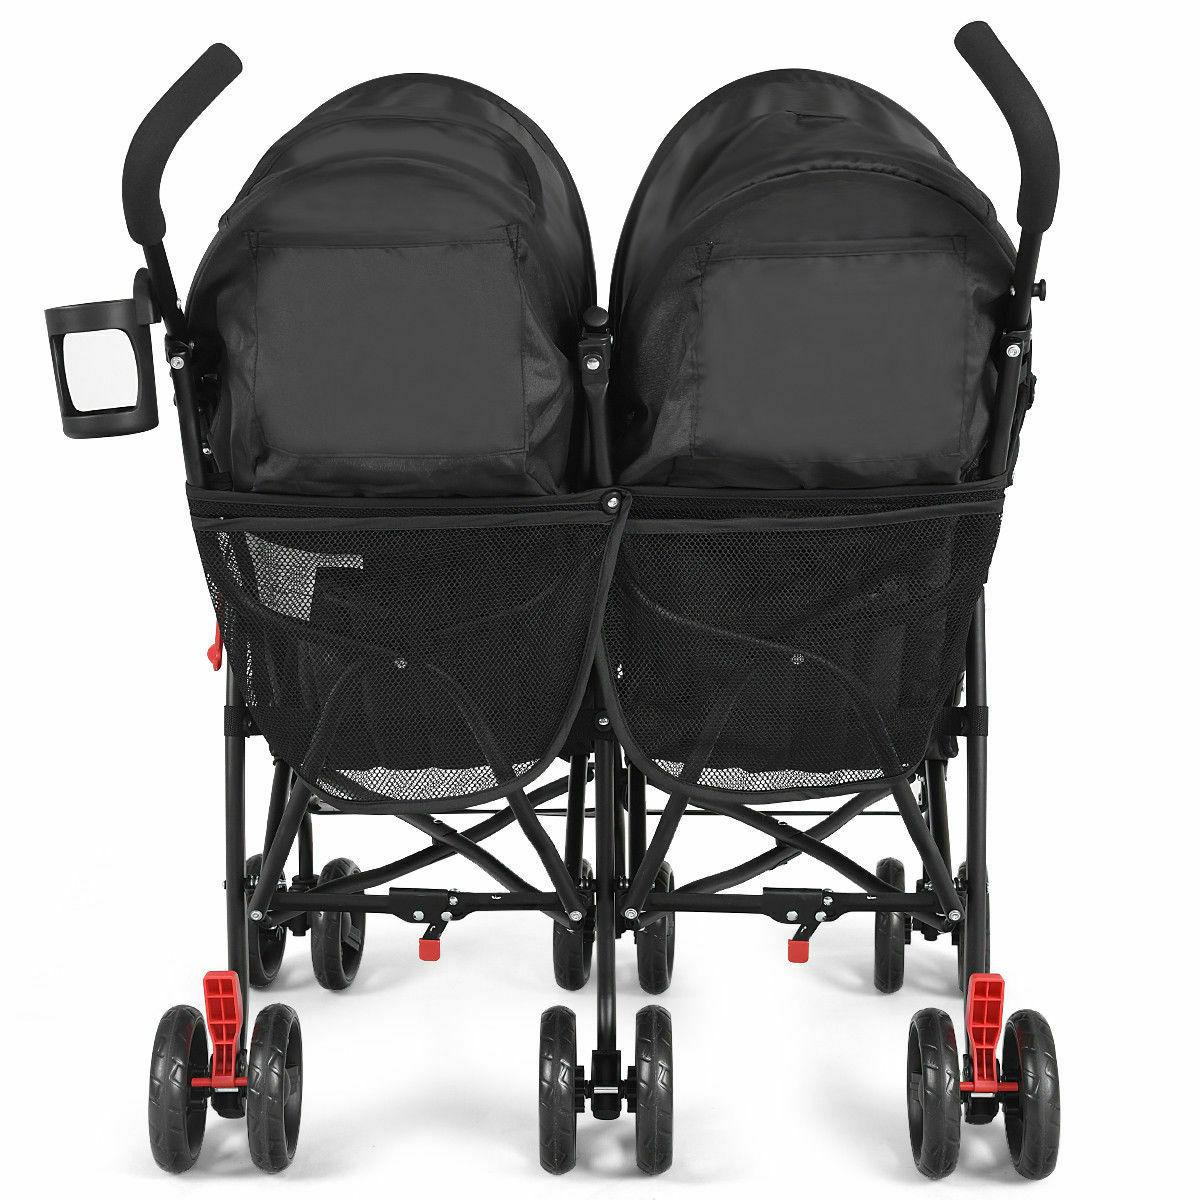 Foldable Double Stroller Ultralight Stroller Pushchair